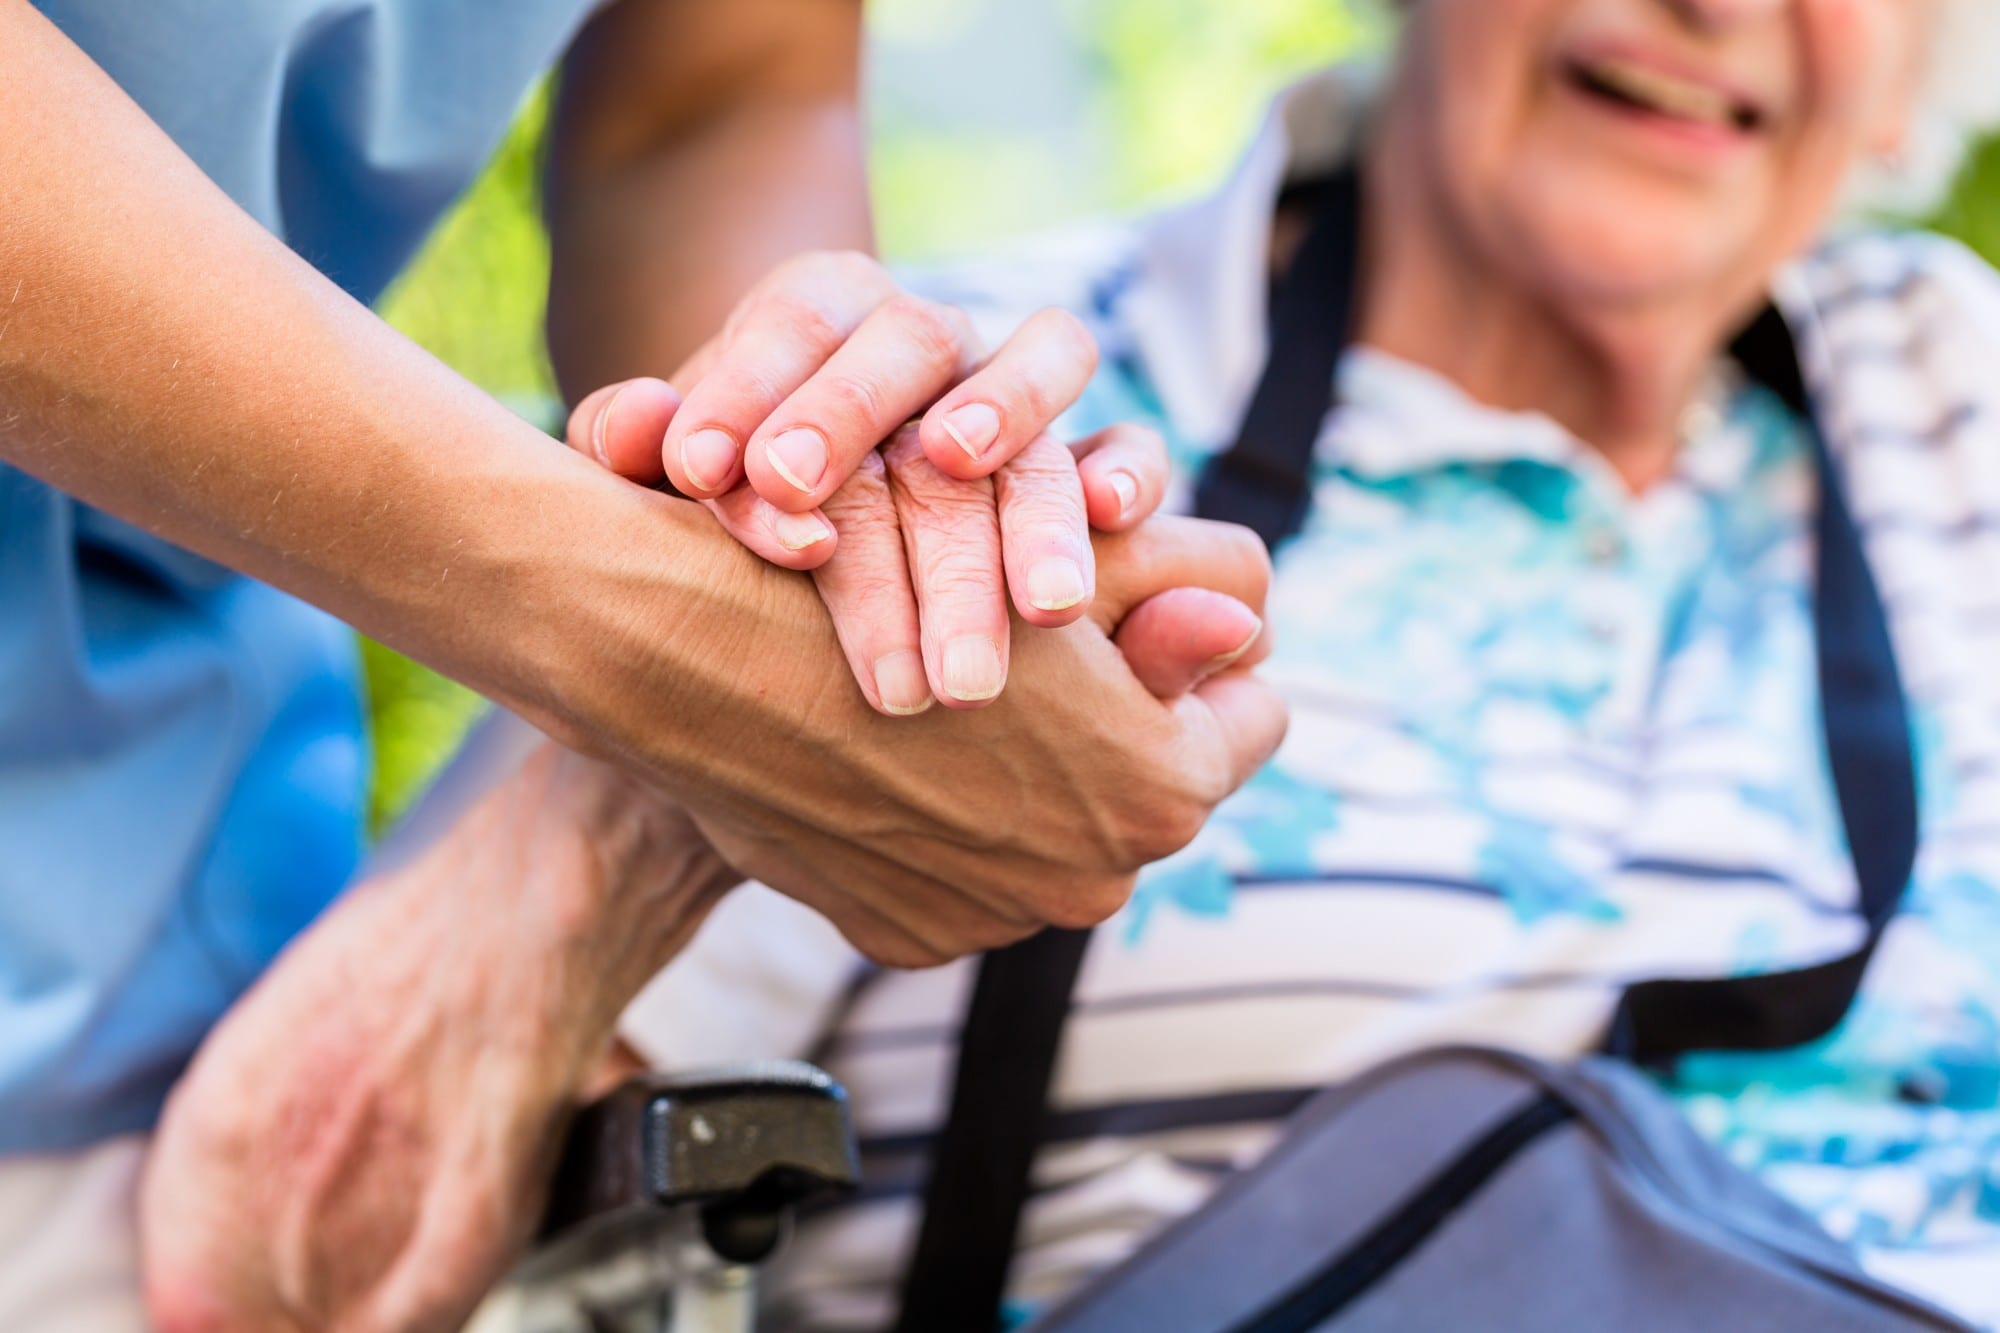 The Best Assisted Living Facilities Near Me: How to Choose the Best from the Rest